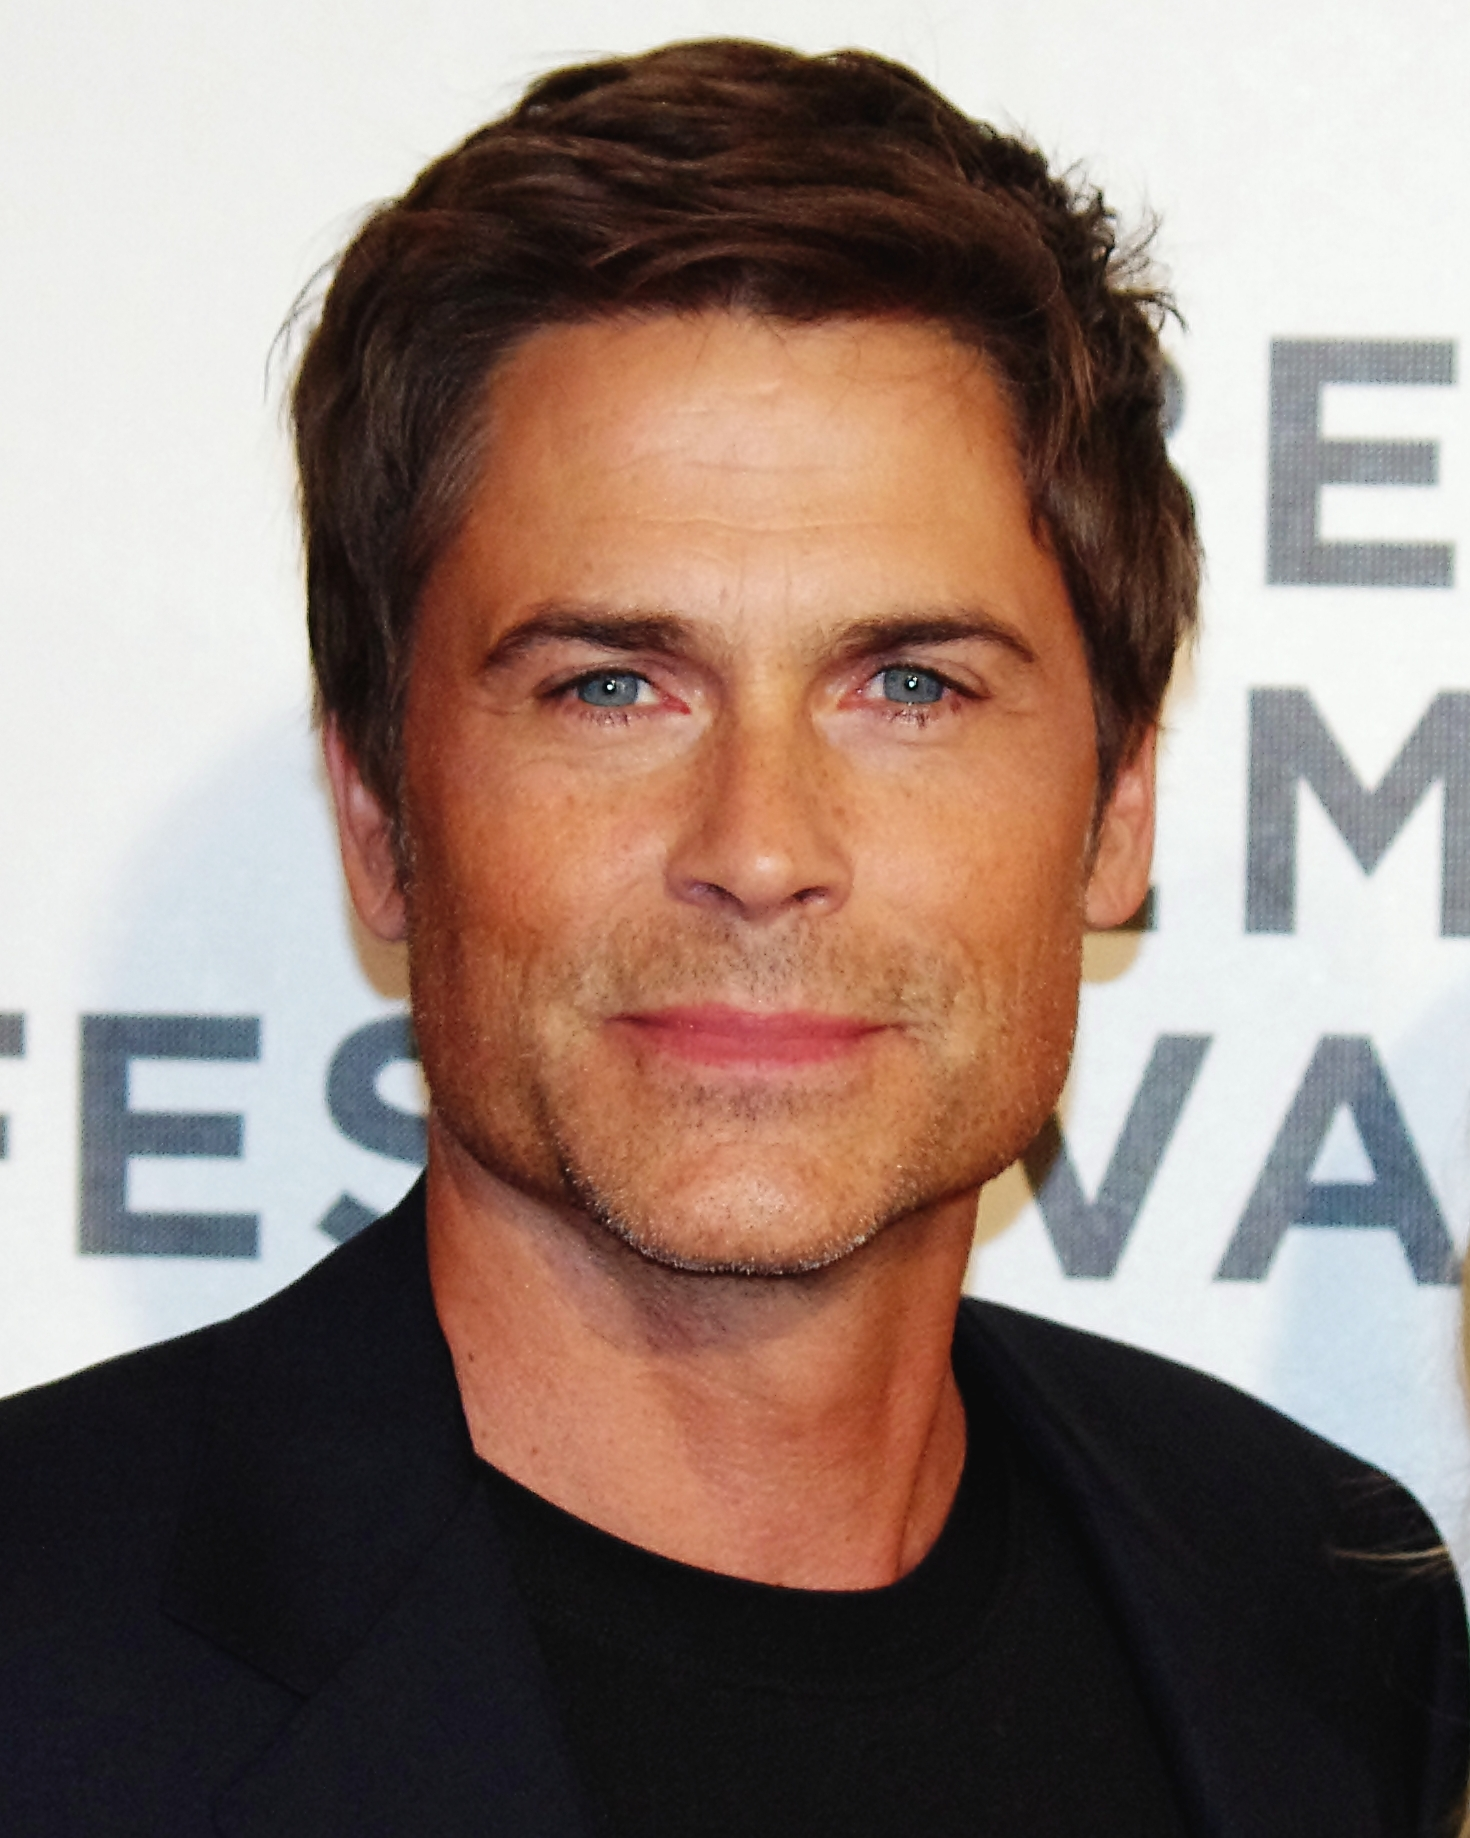 Rob Lowe Photos